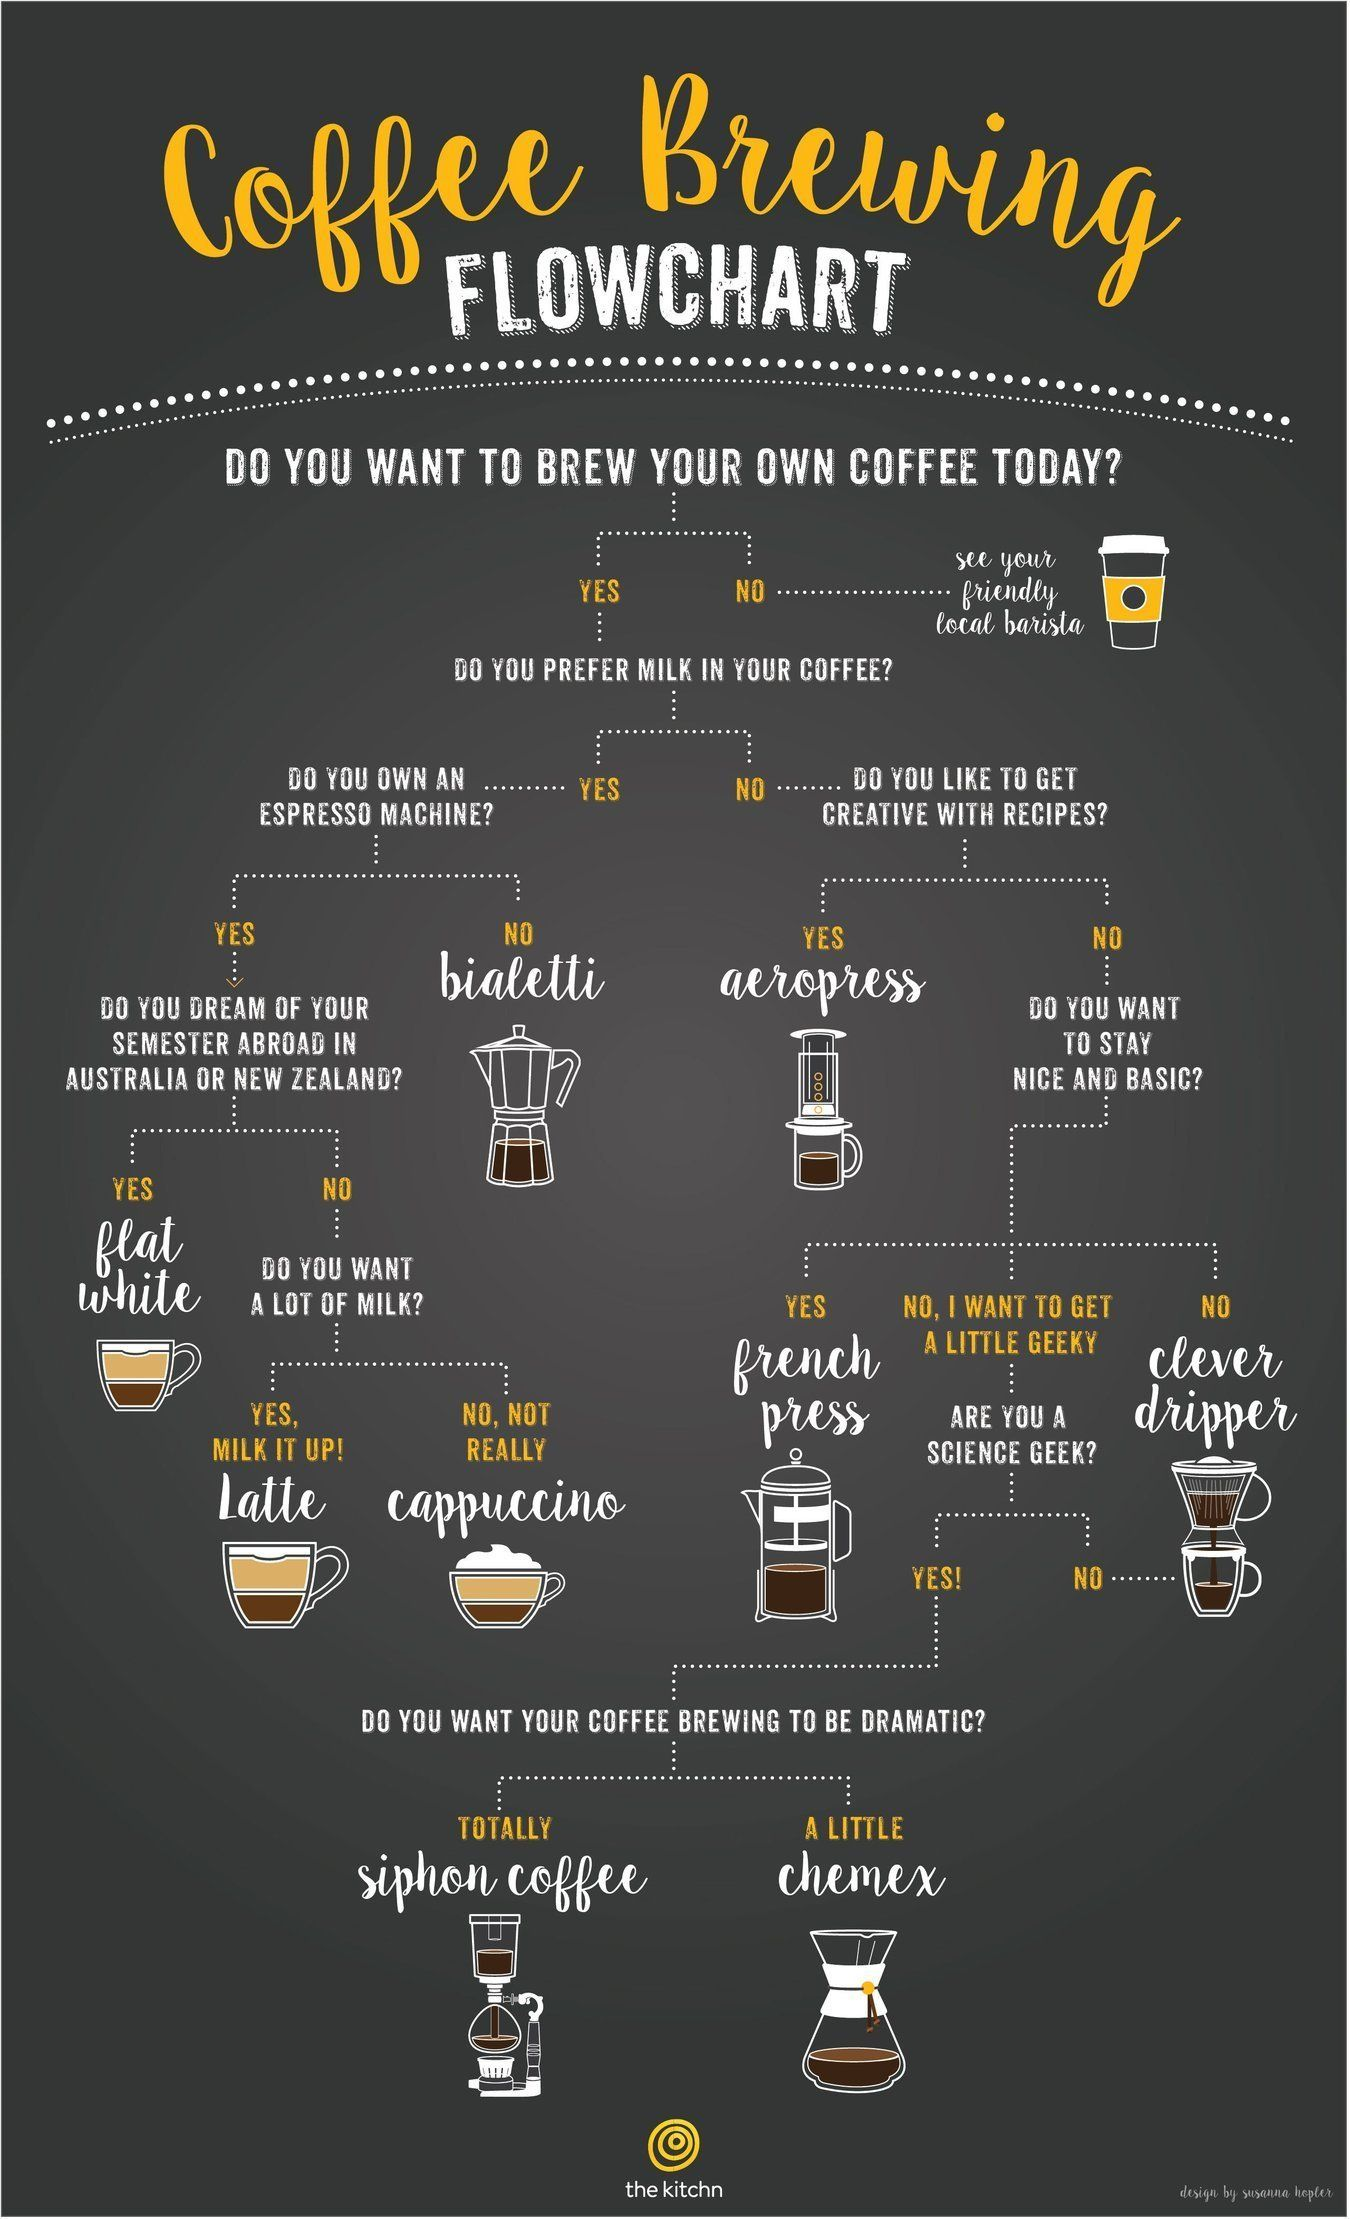 A flowchart to help you choose the right coffee brewing